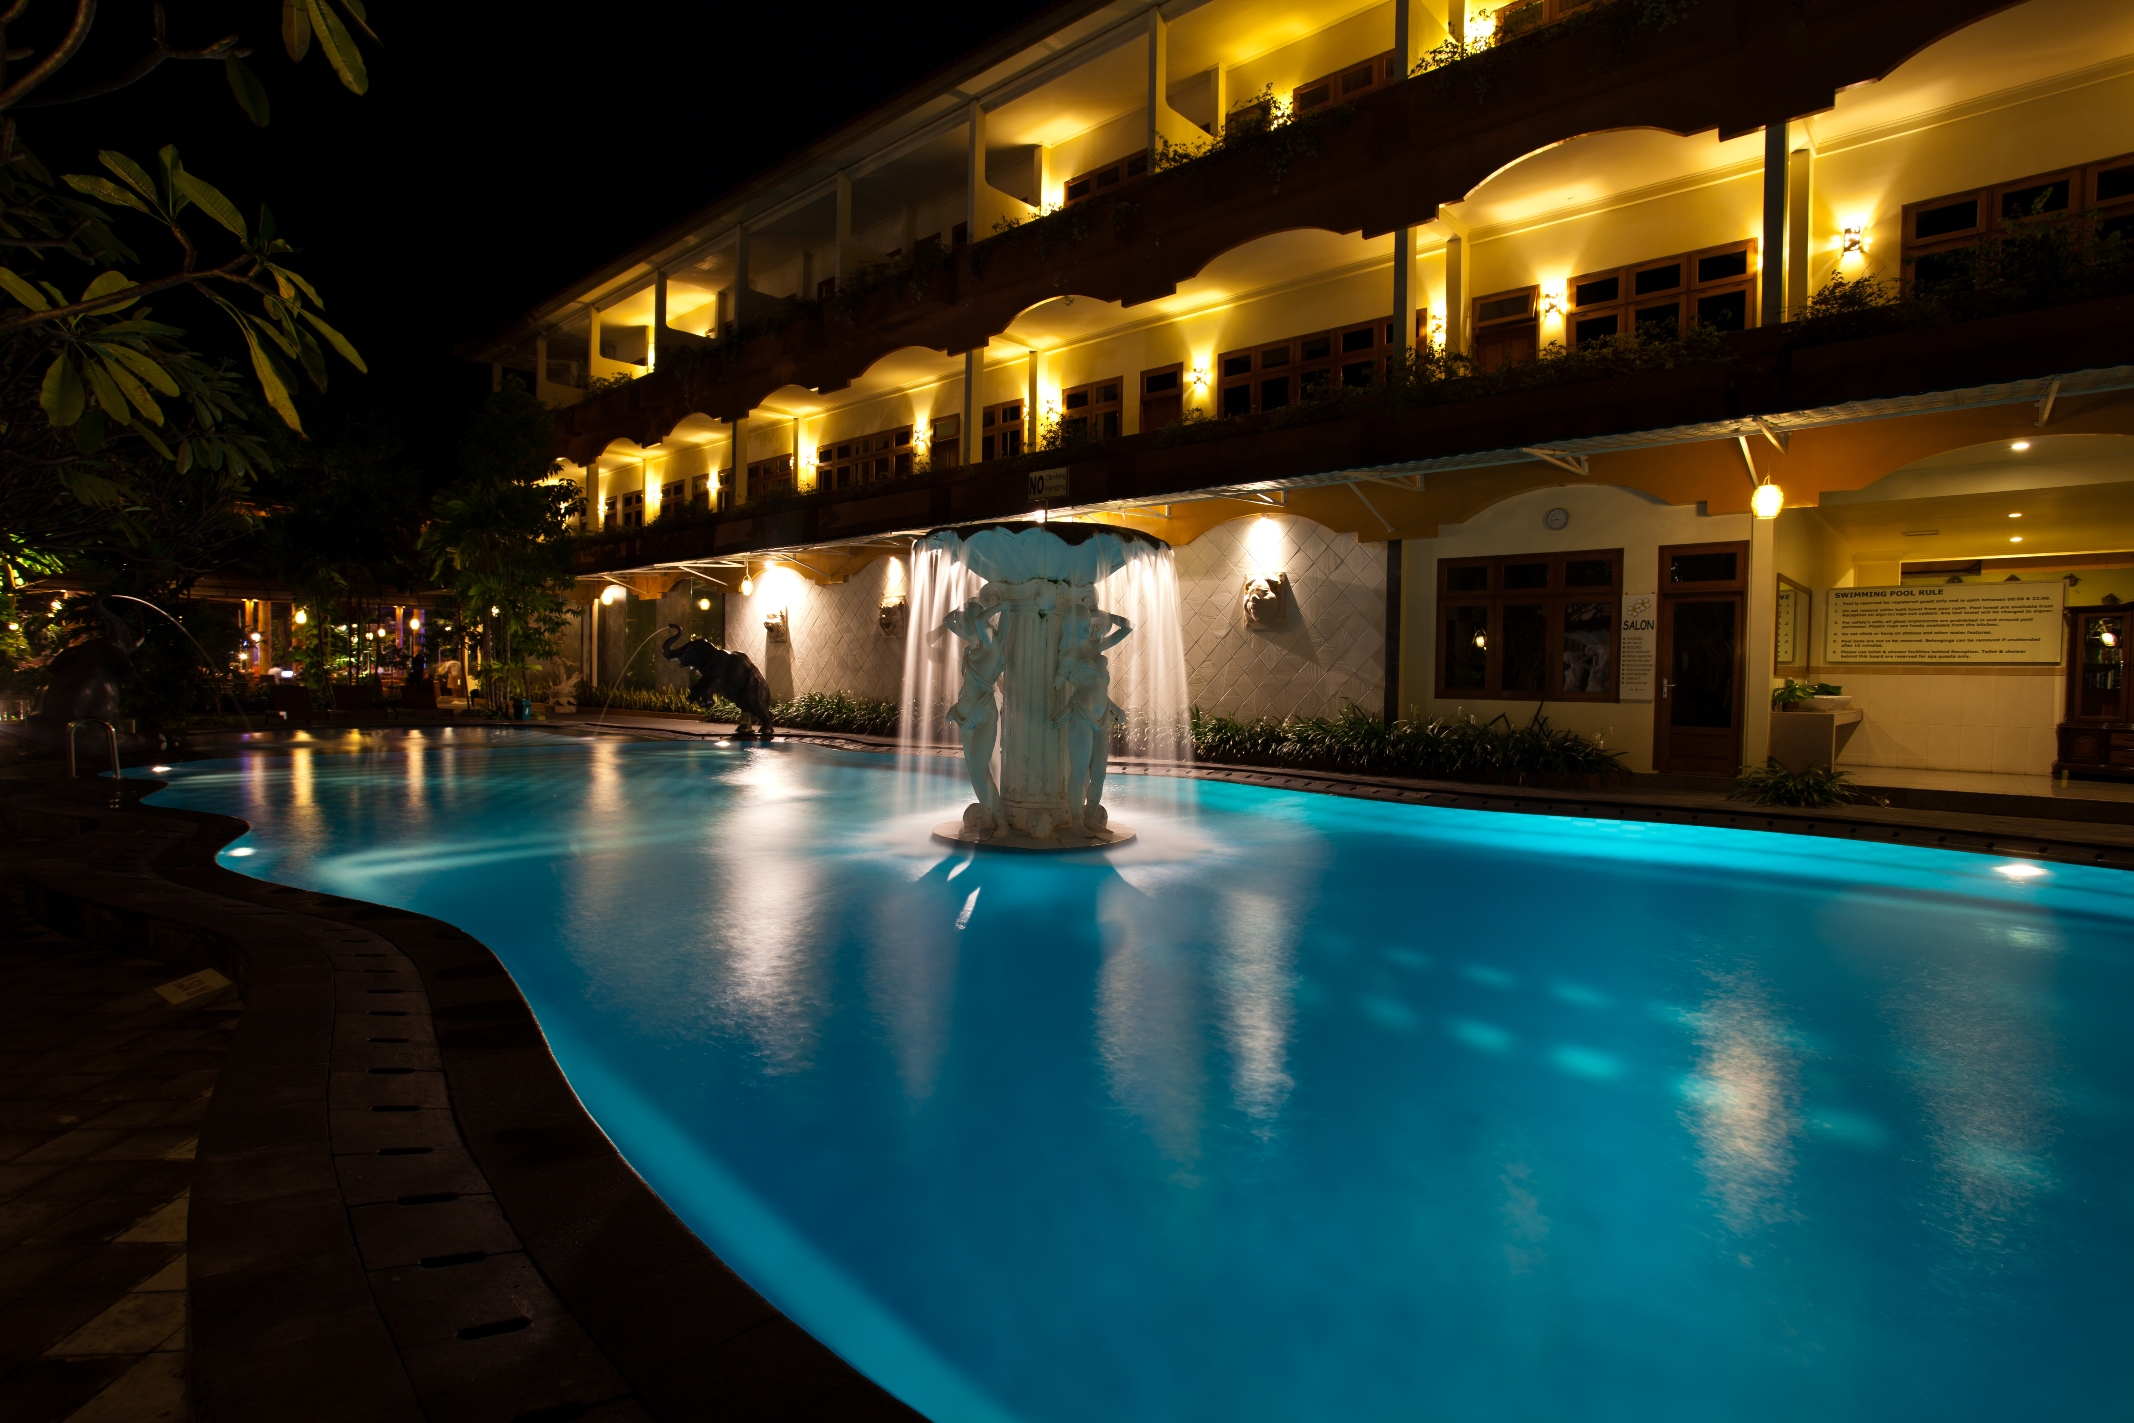 Swimming pool exterior febri 39 s hotel spa bali - Cheap hotels in aberdeen with swimming pool ...